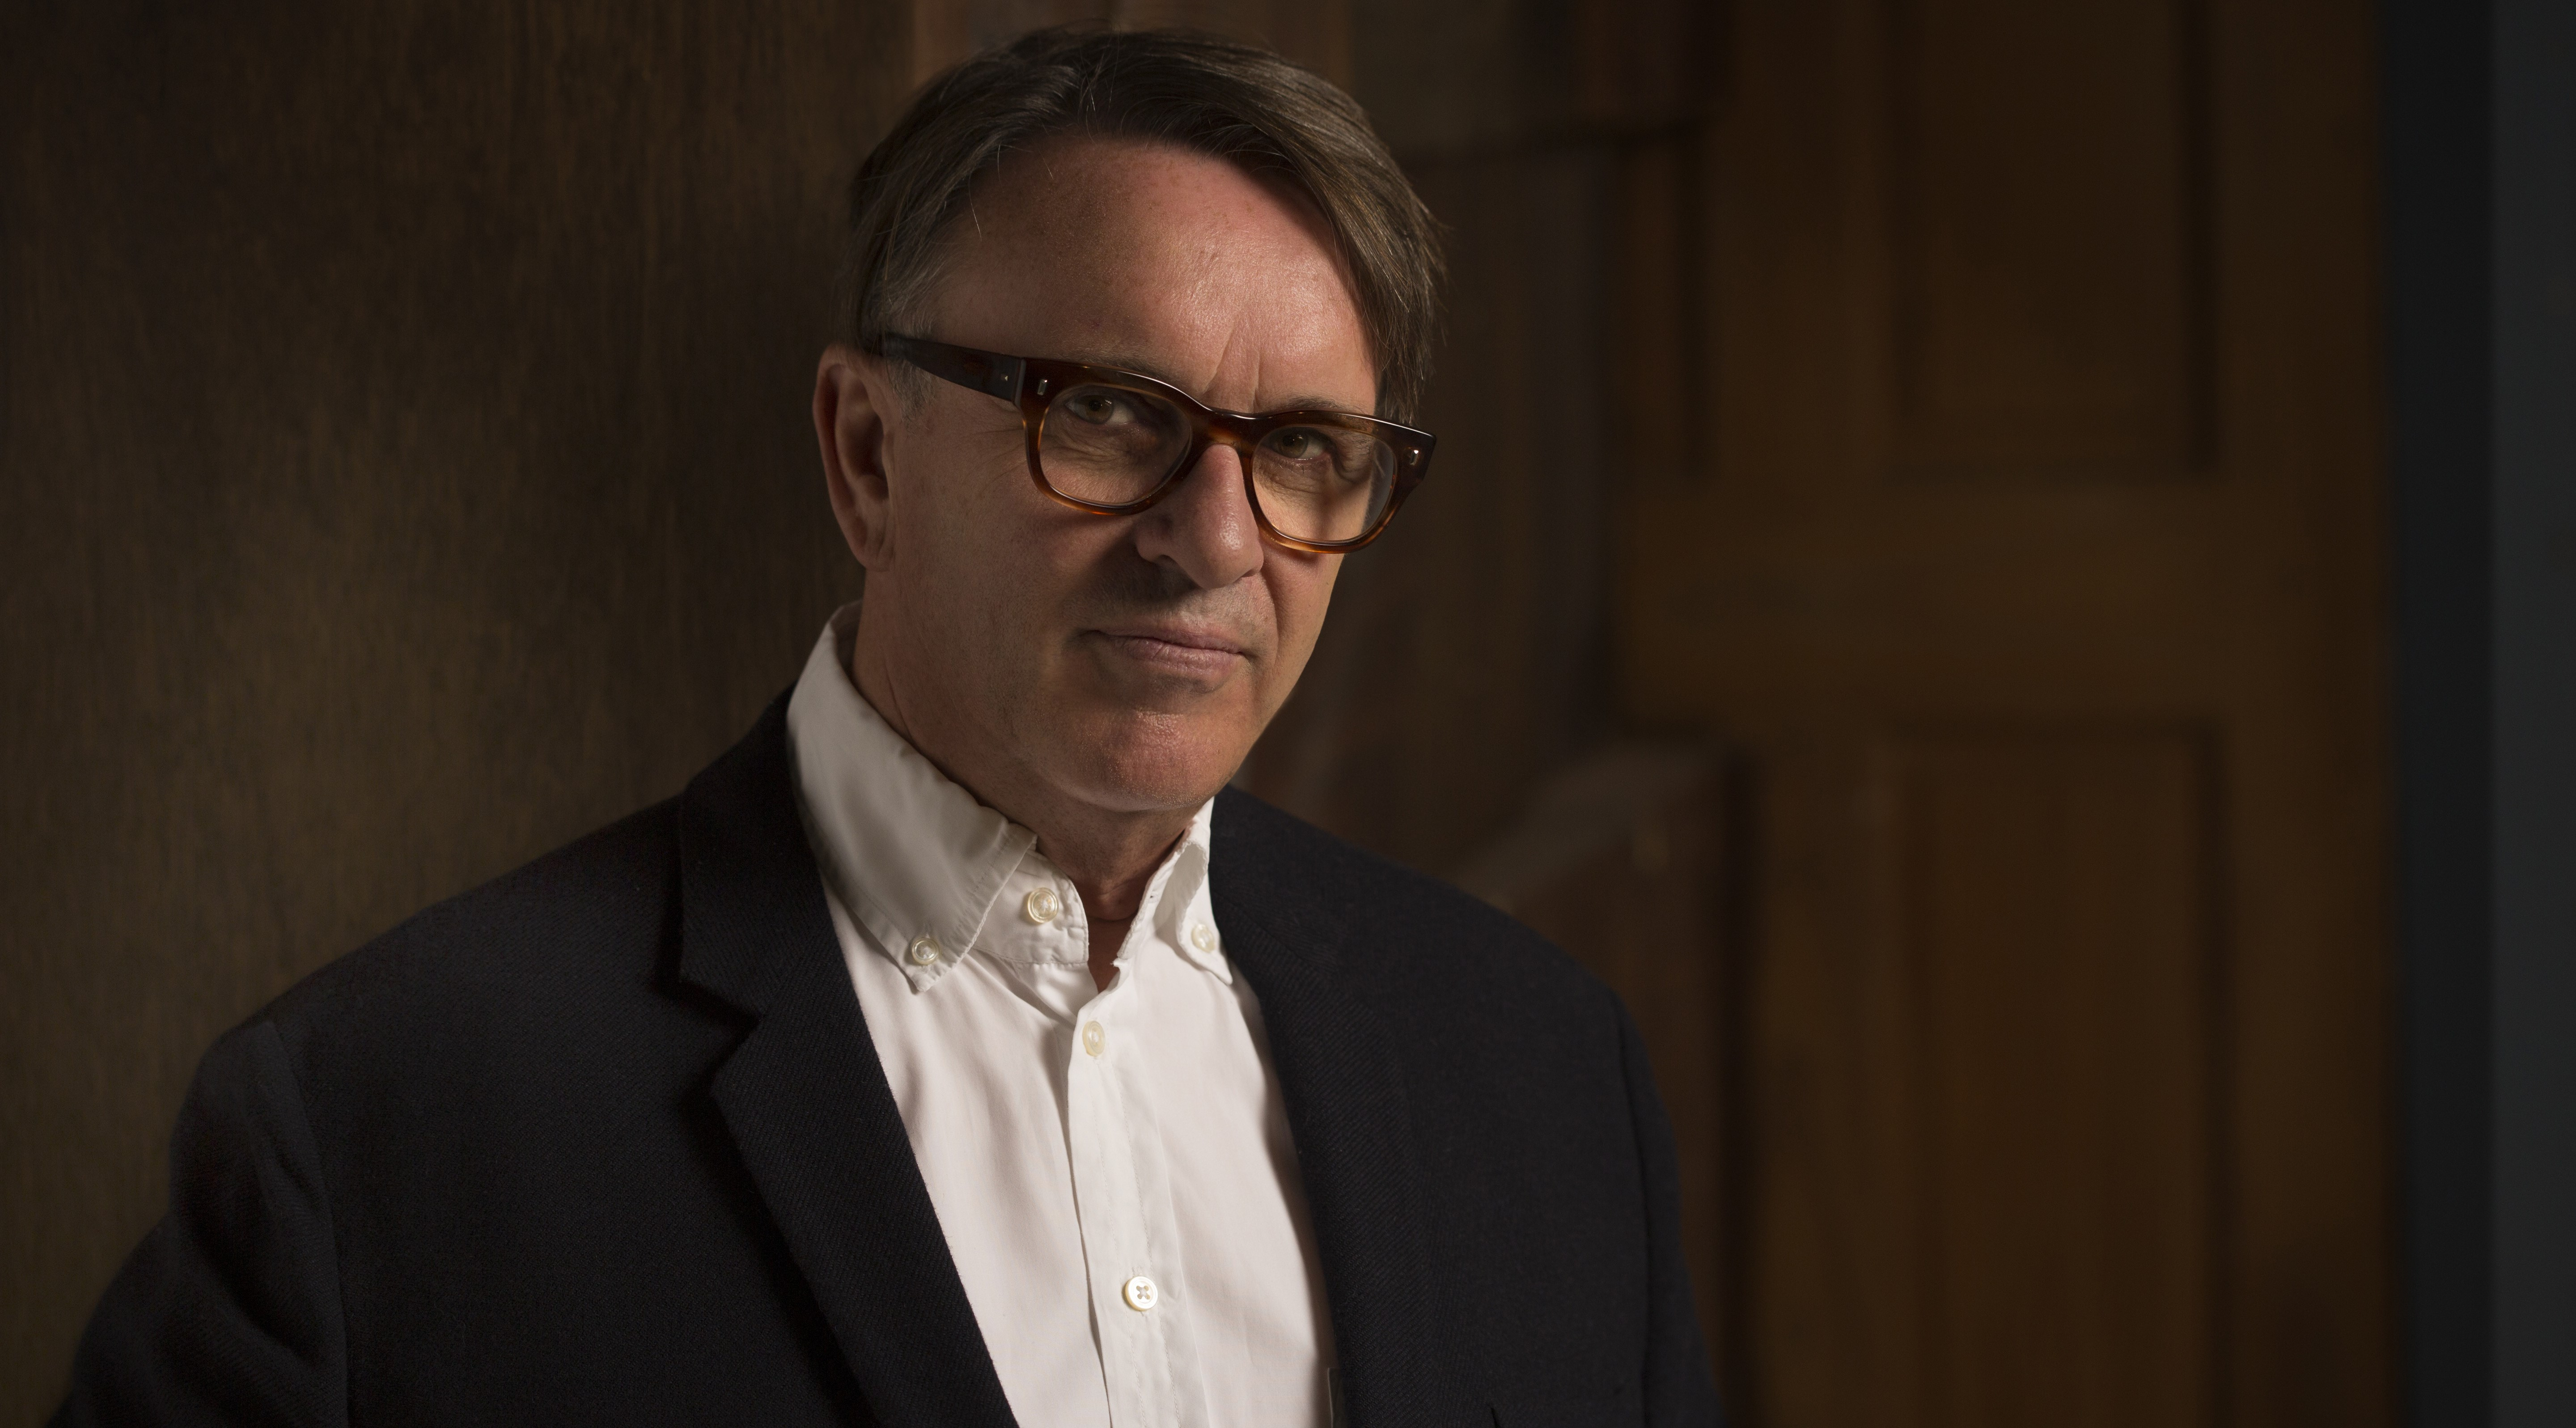 Chris Difford chats ahead of Shrewsbury Folk Festival performance